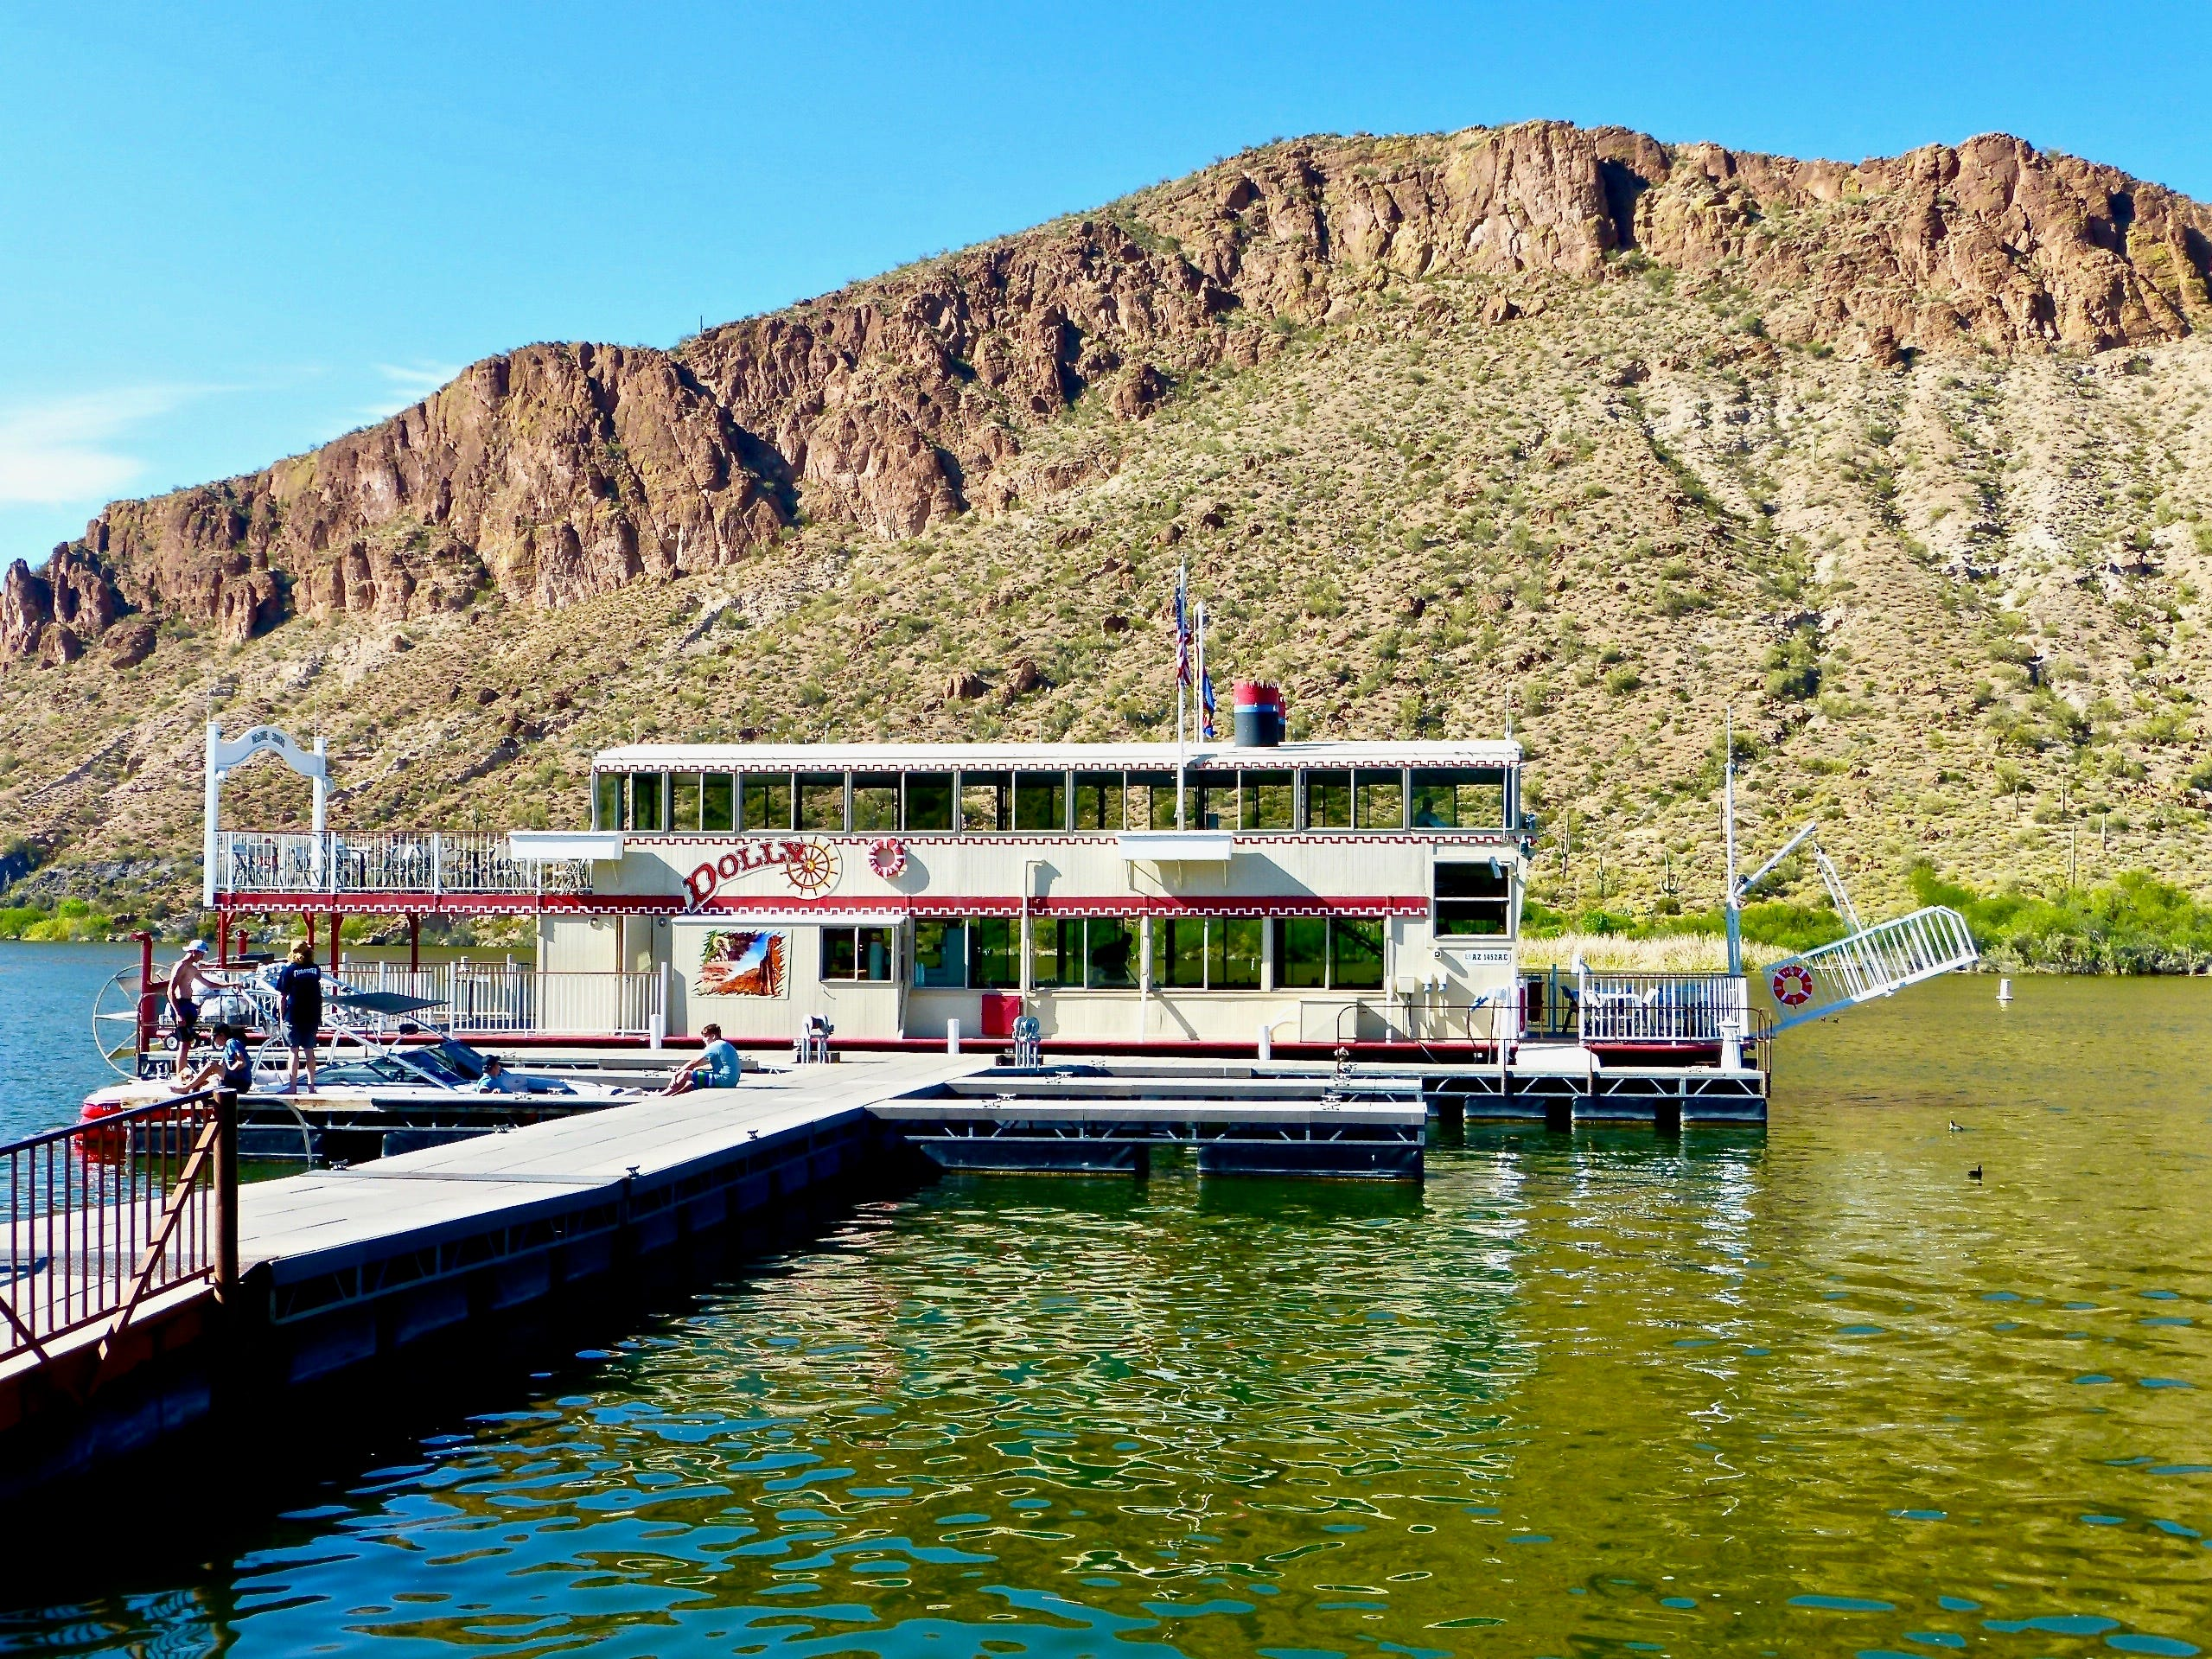 Dolly Steamboat | Of all the outings you expect to find in the middle of the desert, a steamboat ride might seem the most unlikely. But make the drive to Canyon Lake and you can take a scenic cruise on Dolly Steamboat. | Details:  480-827-9144, www.dollysteamboat.com.